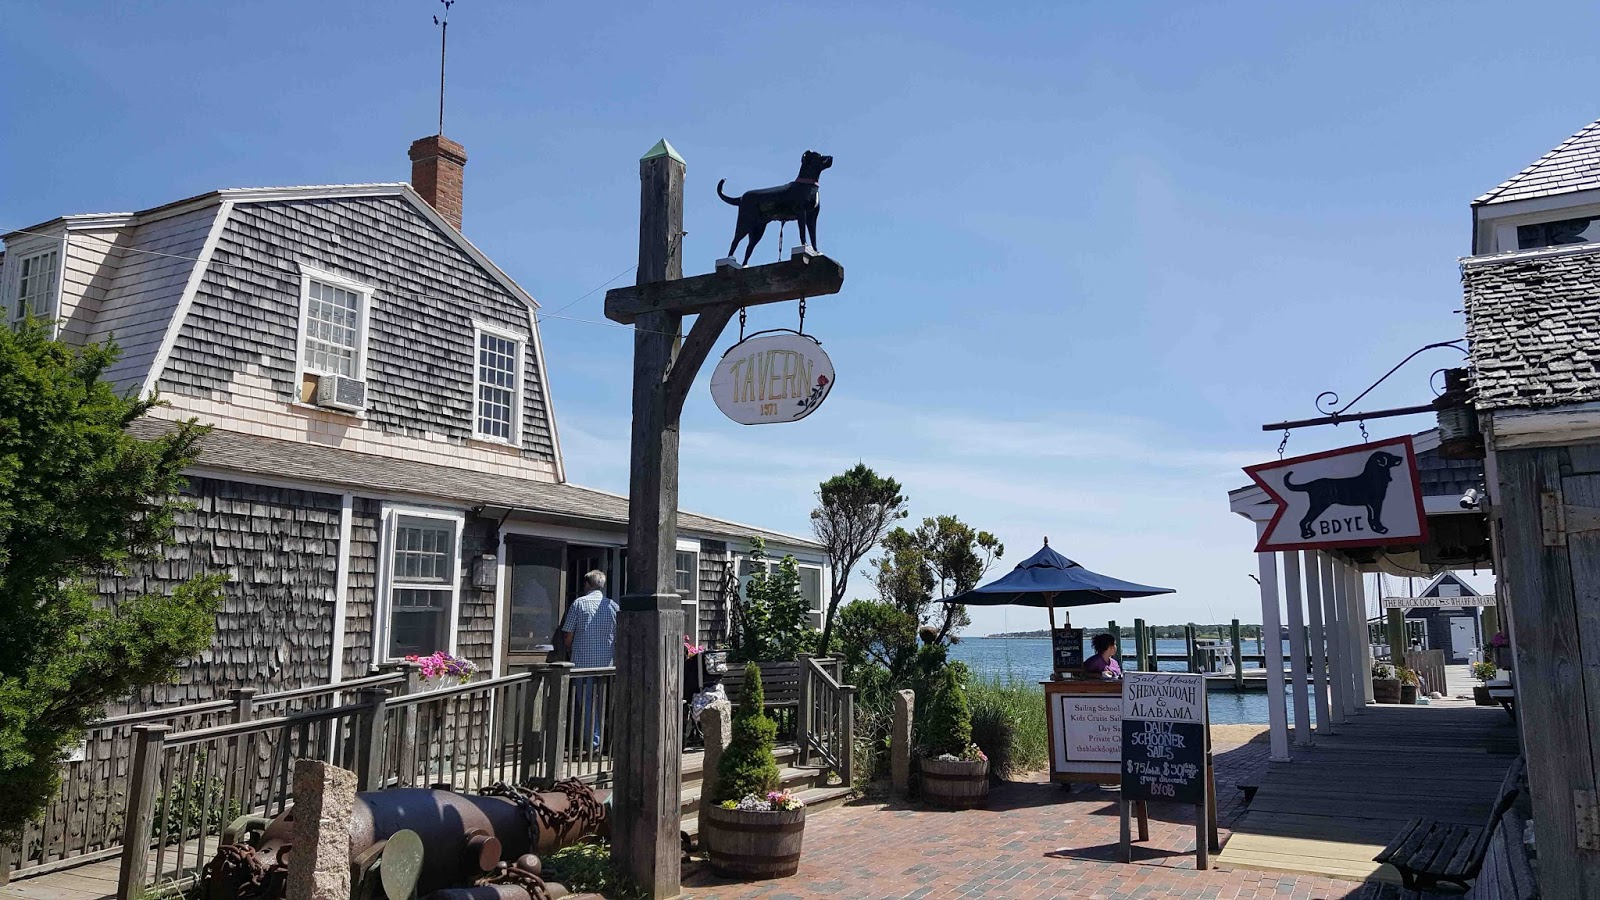 Vineyard Haven Black Dog Tavern